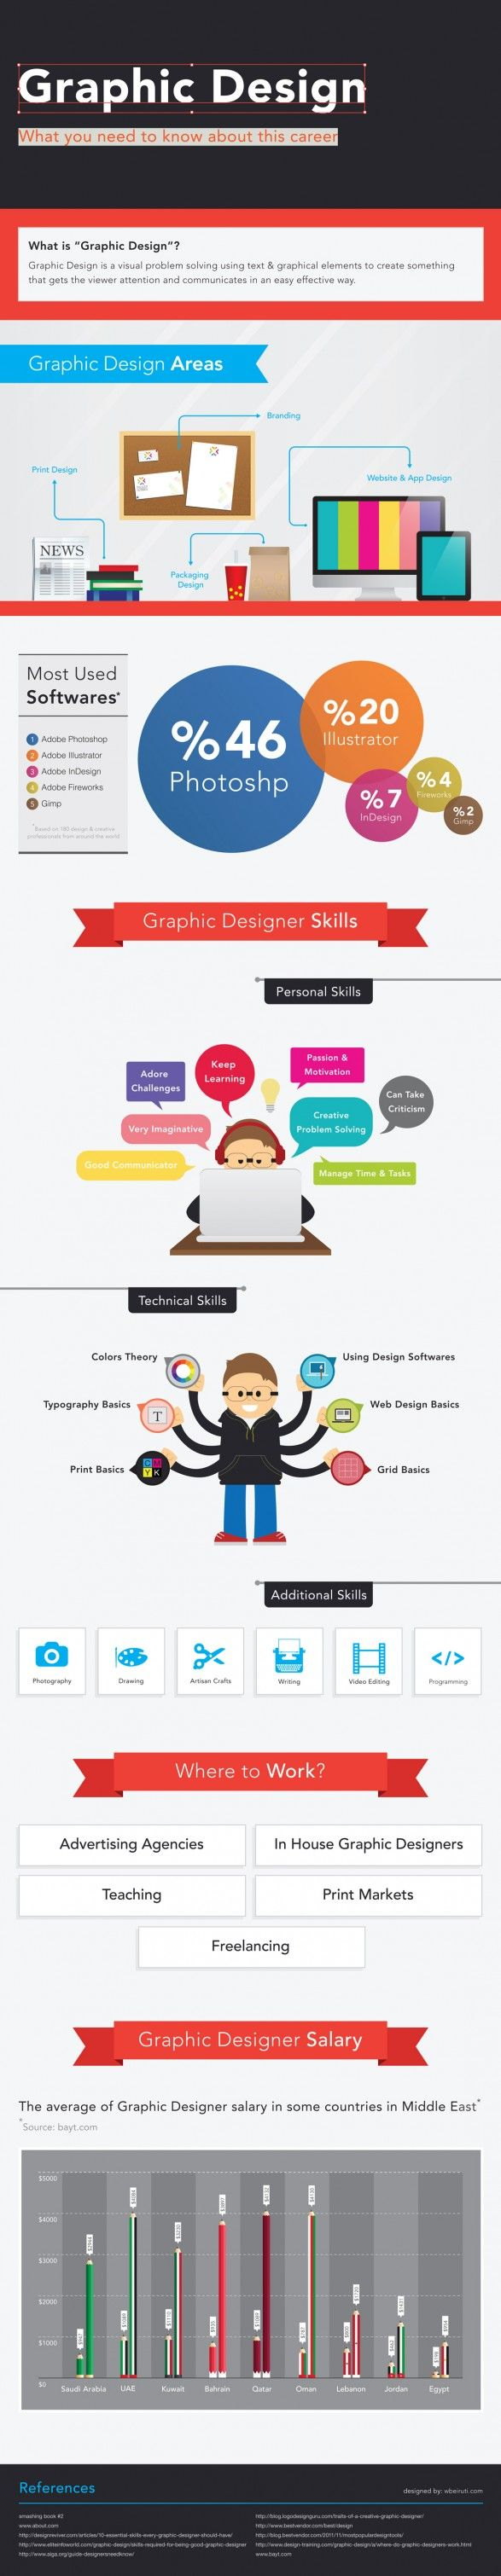 20 best images about field specific on pinterest work